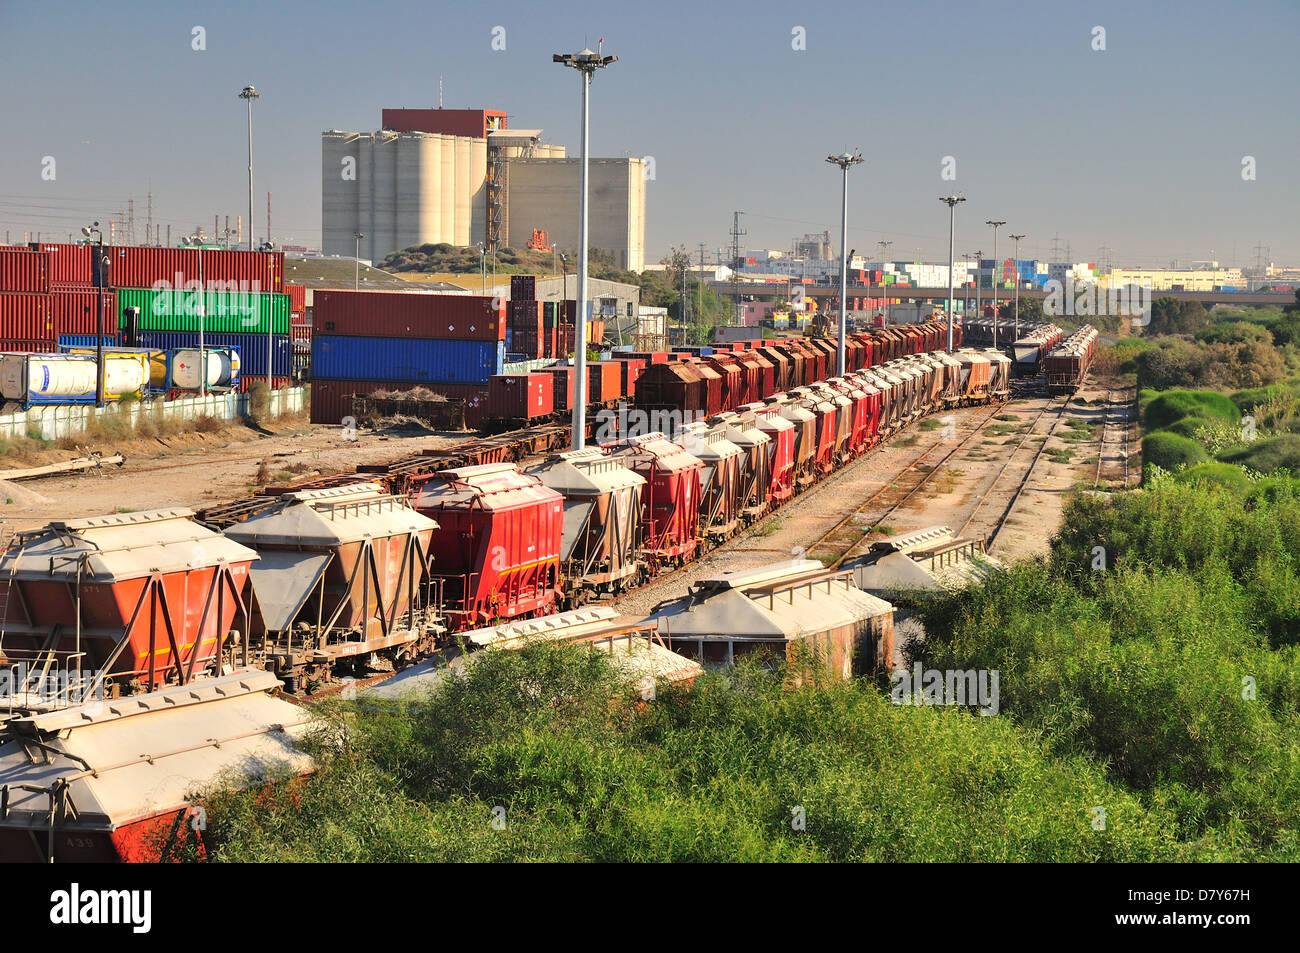 Industrial trains at the railway station. Stock Photo